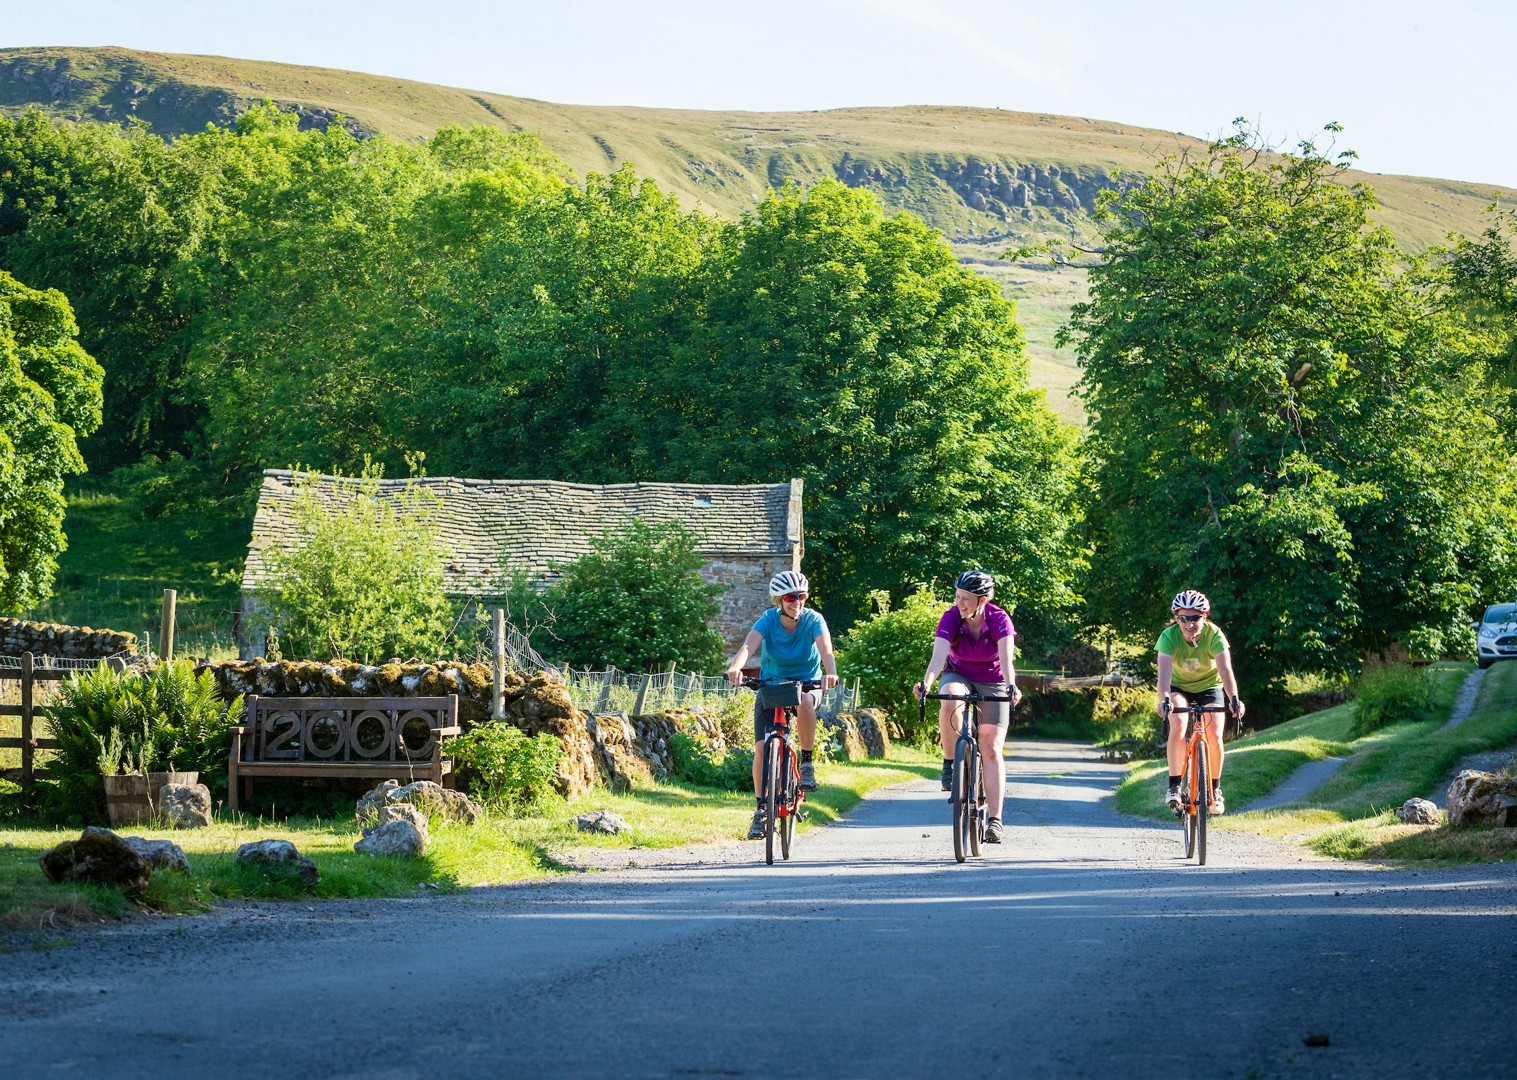 local-villages-of-yorkshire-moors-leisure-cycling.jpg - UK - Way of the Roses 5 Days Cycling - Self-Guided Leisure Cycling Holiday - Leisure Cycling